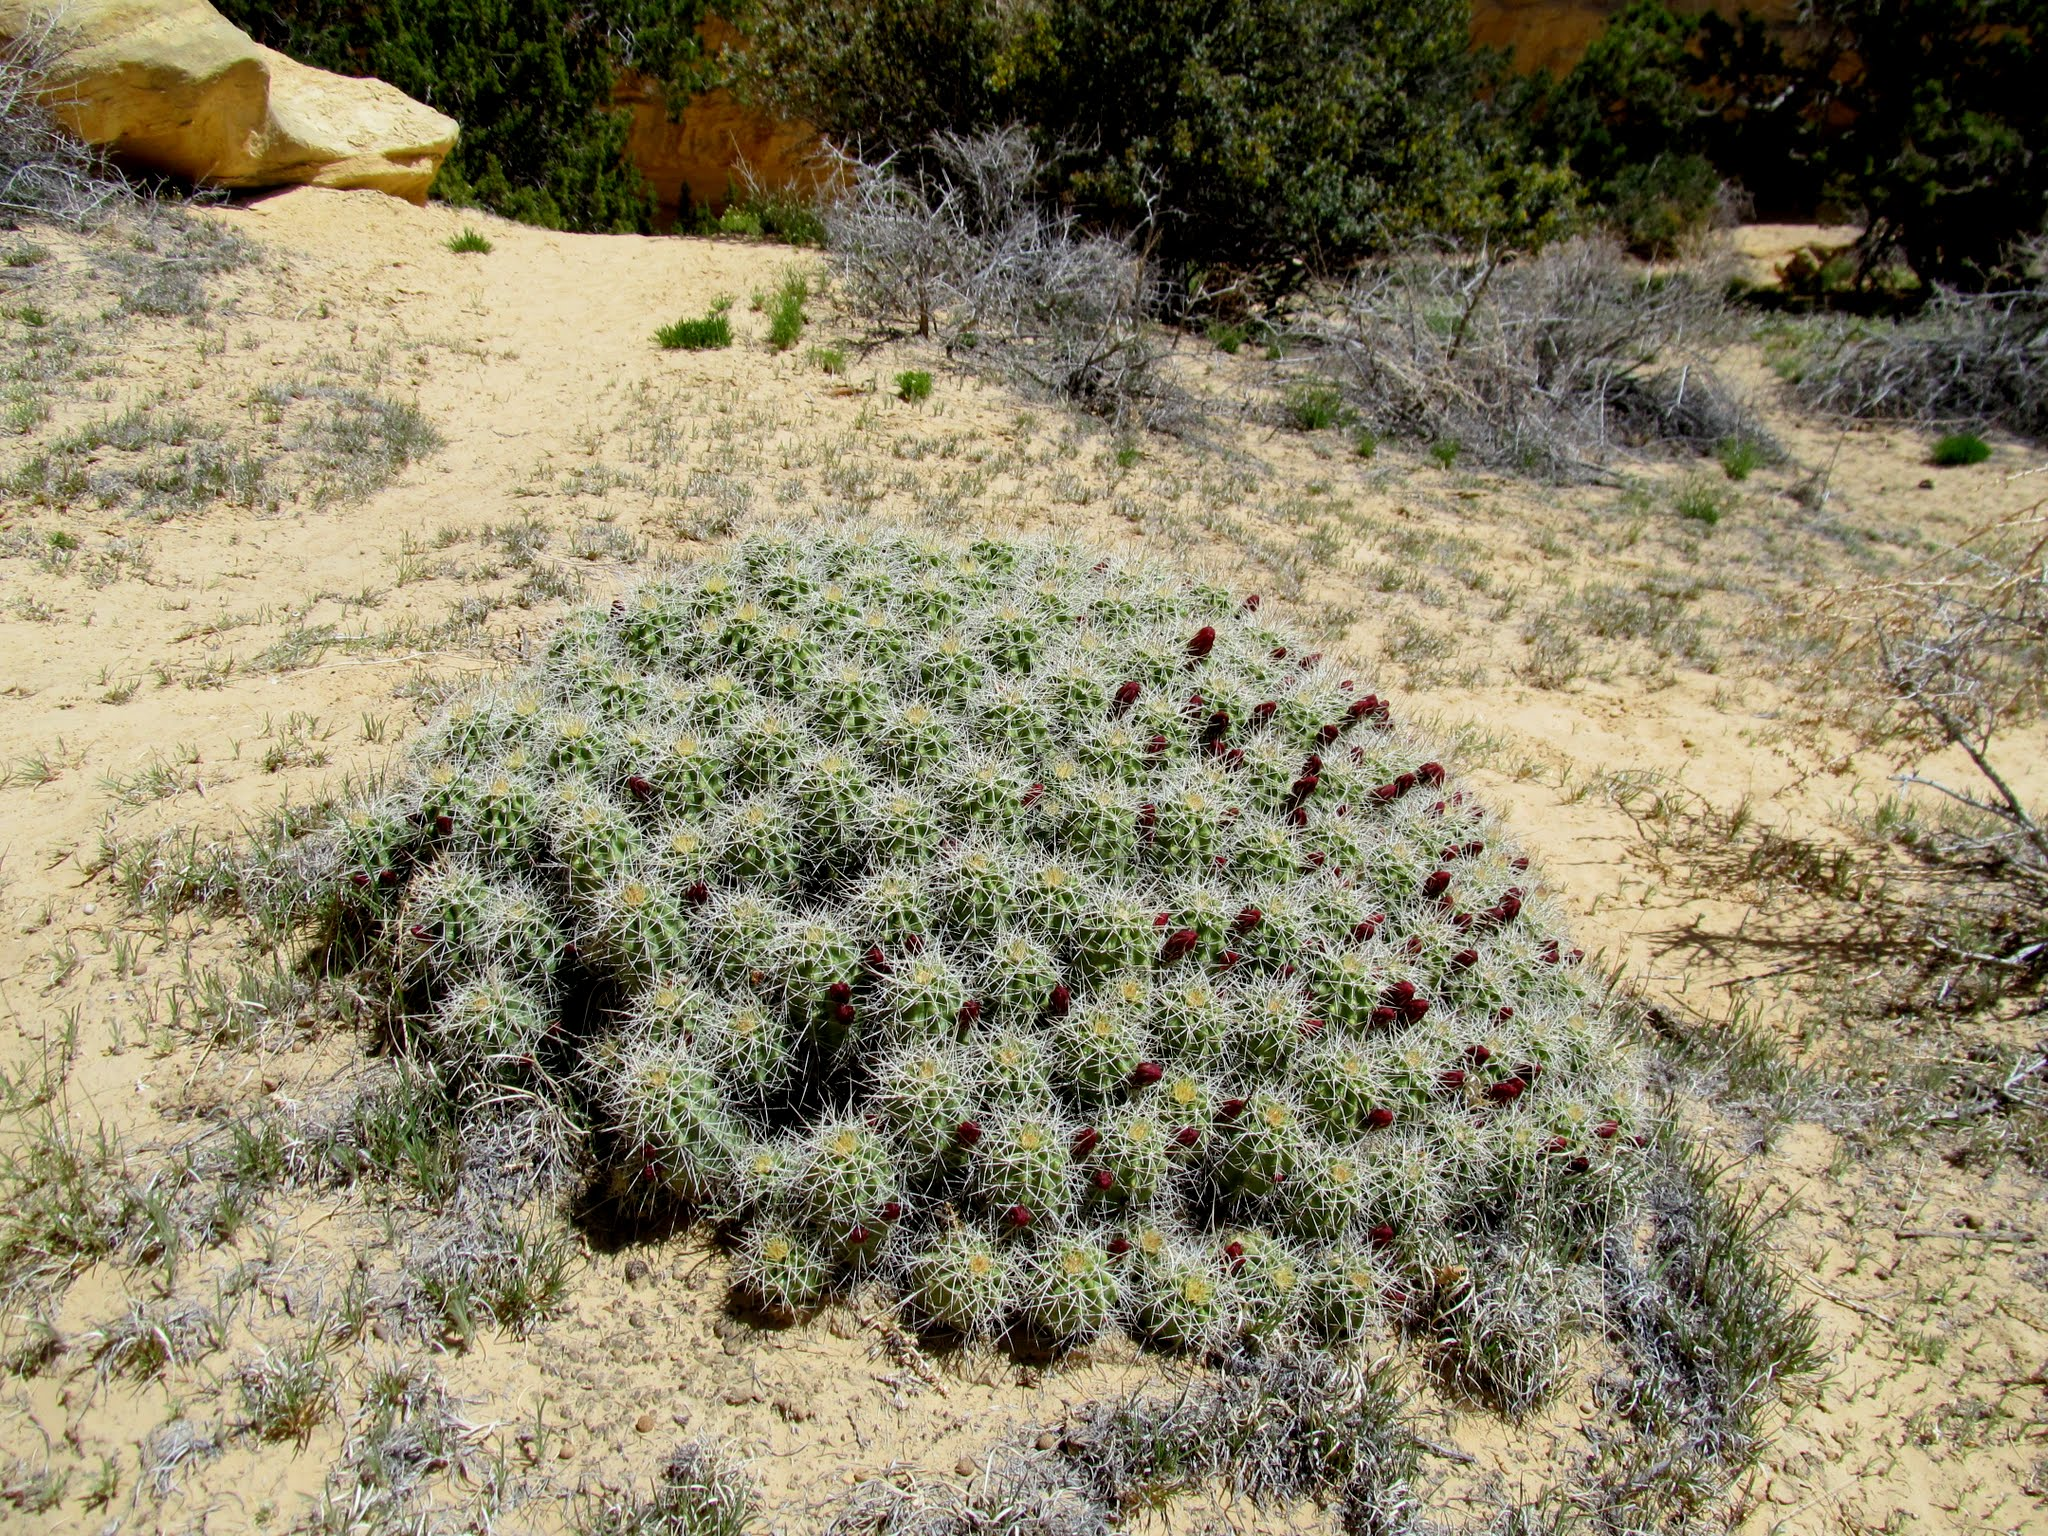 Photo: Monstrous mound of Claret Cup Cactus